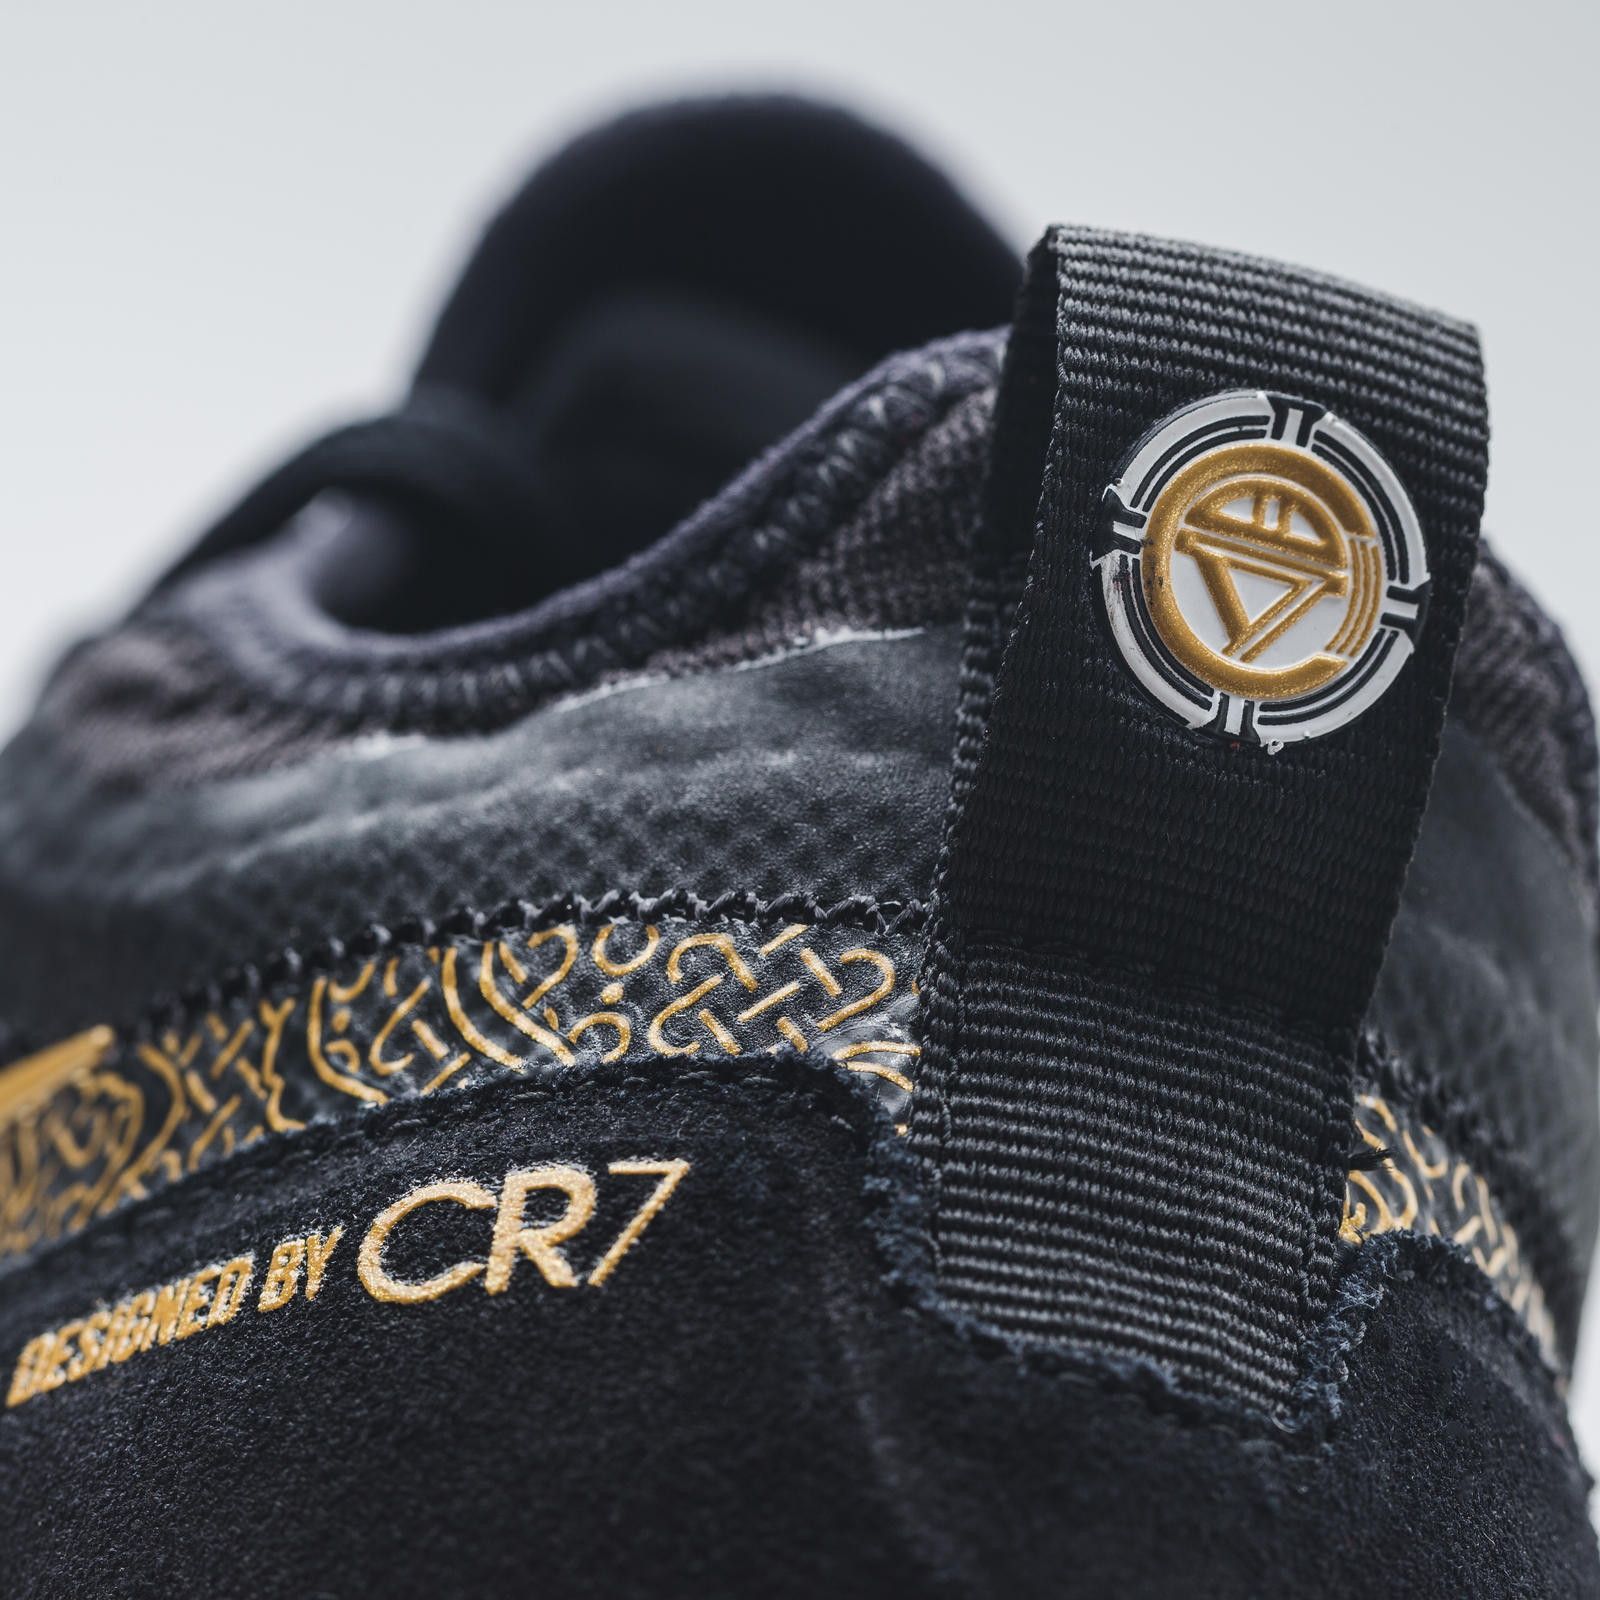 bd55fd4ca82 Cristiano Ronaldo s China C罗 Collection - Nike News